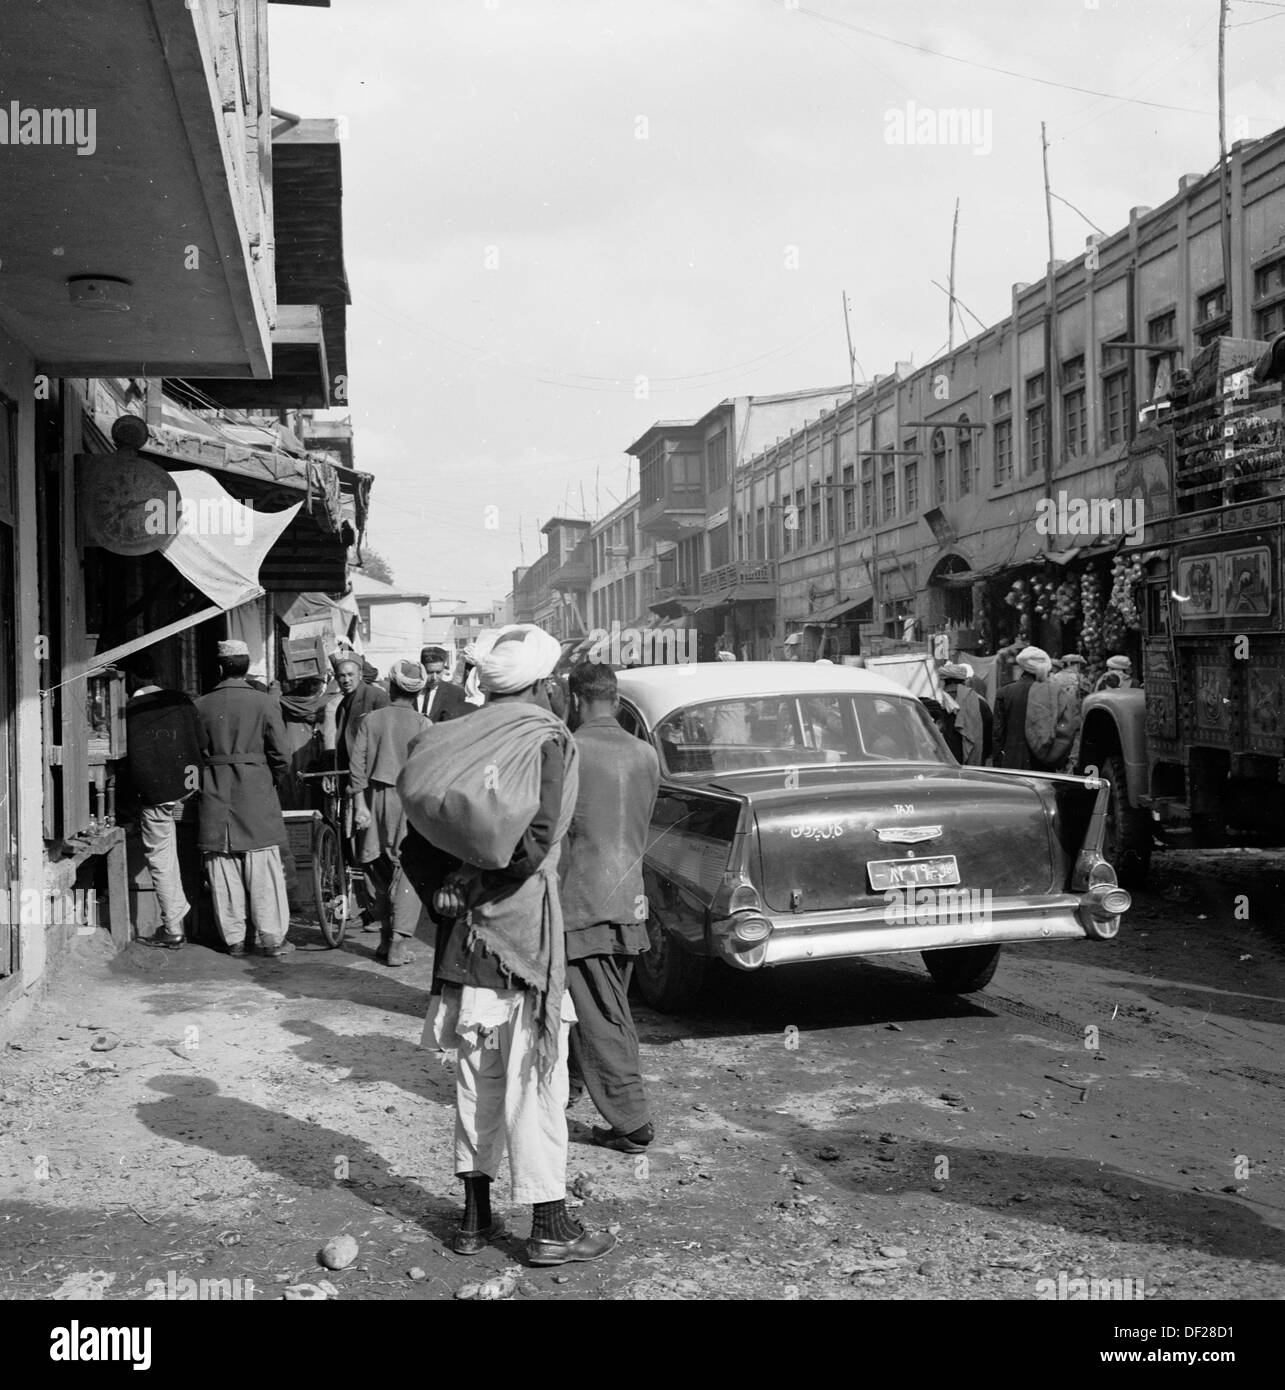 Historical picture from1950s by J Allan Cash showing a busy street in the capital city of Kabul, Afghanistan. - Stock Image